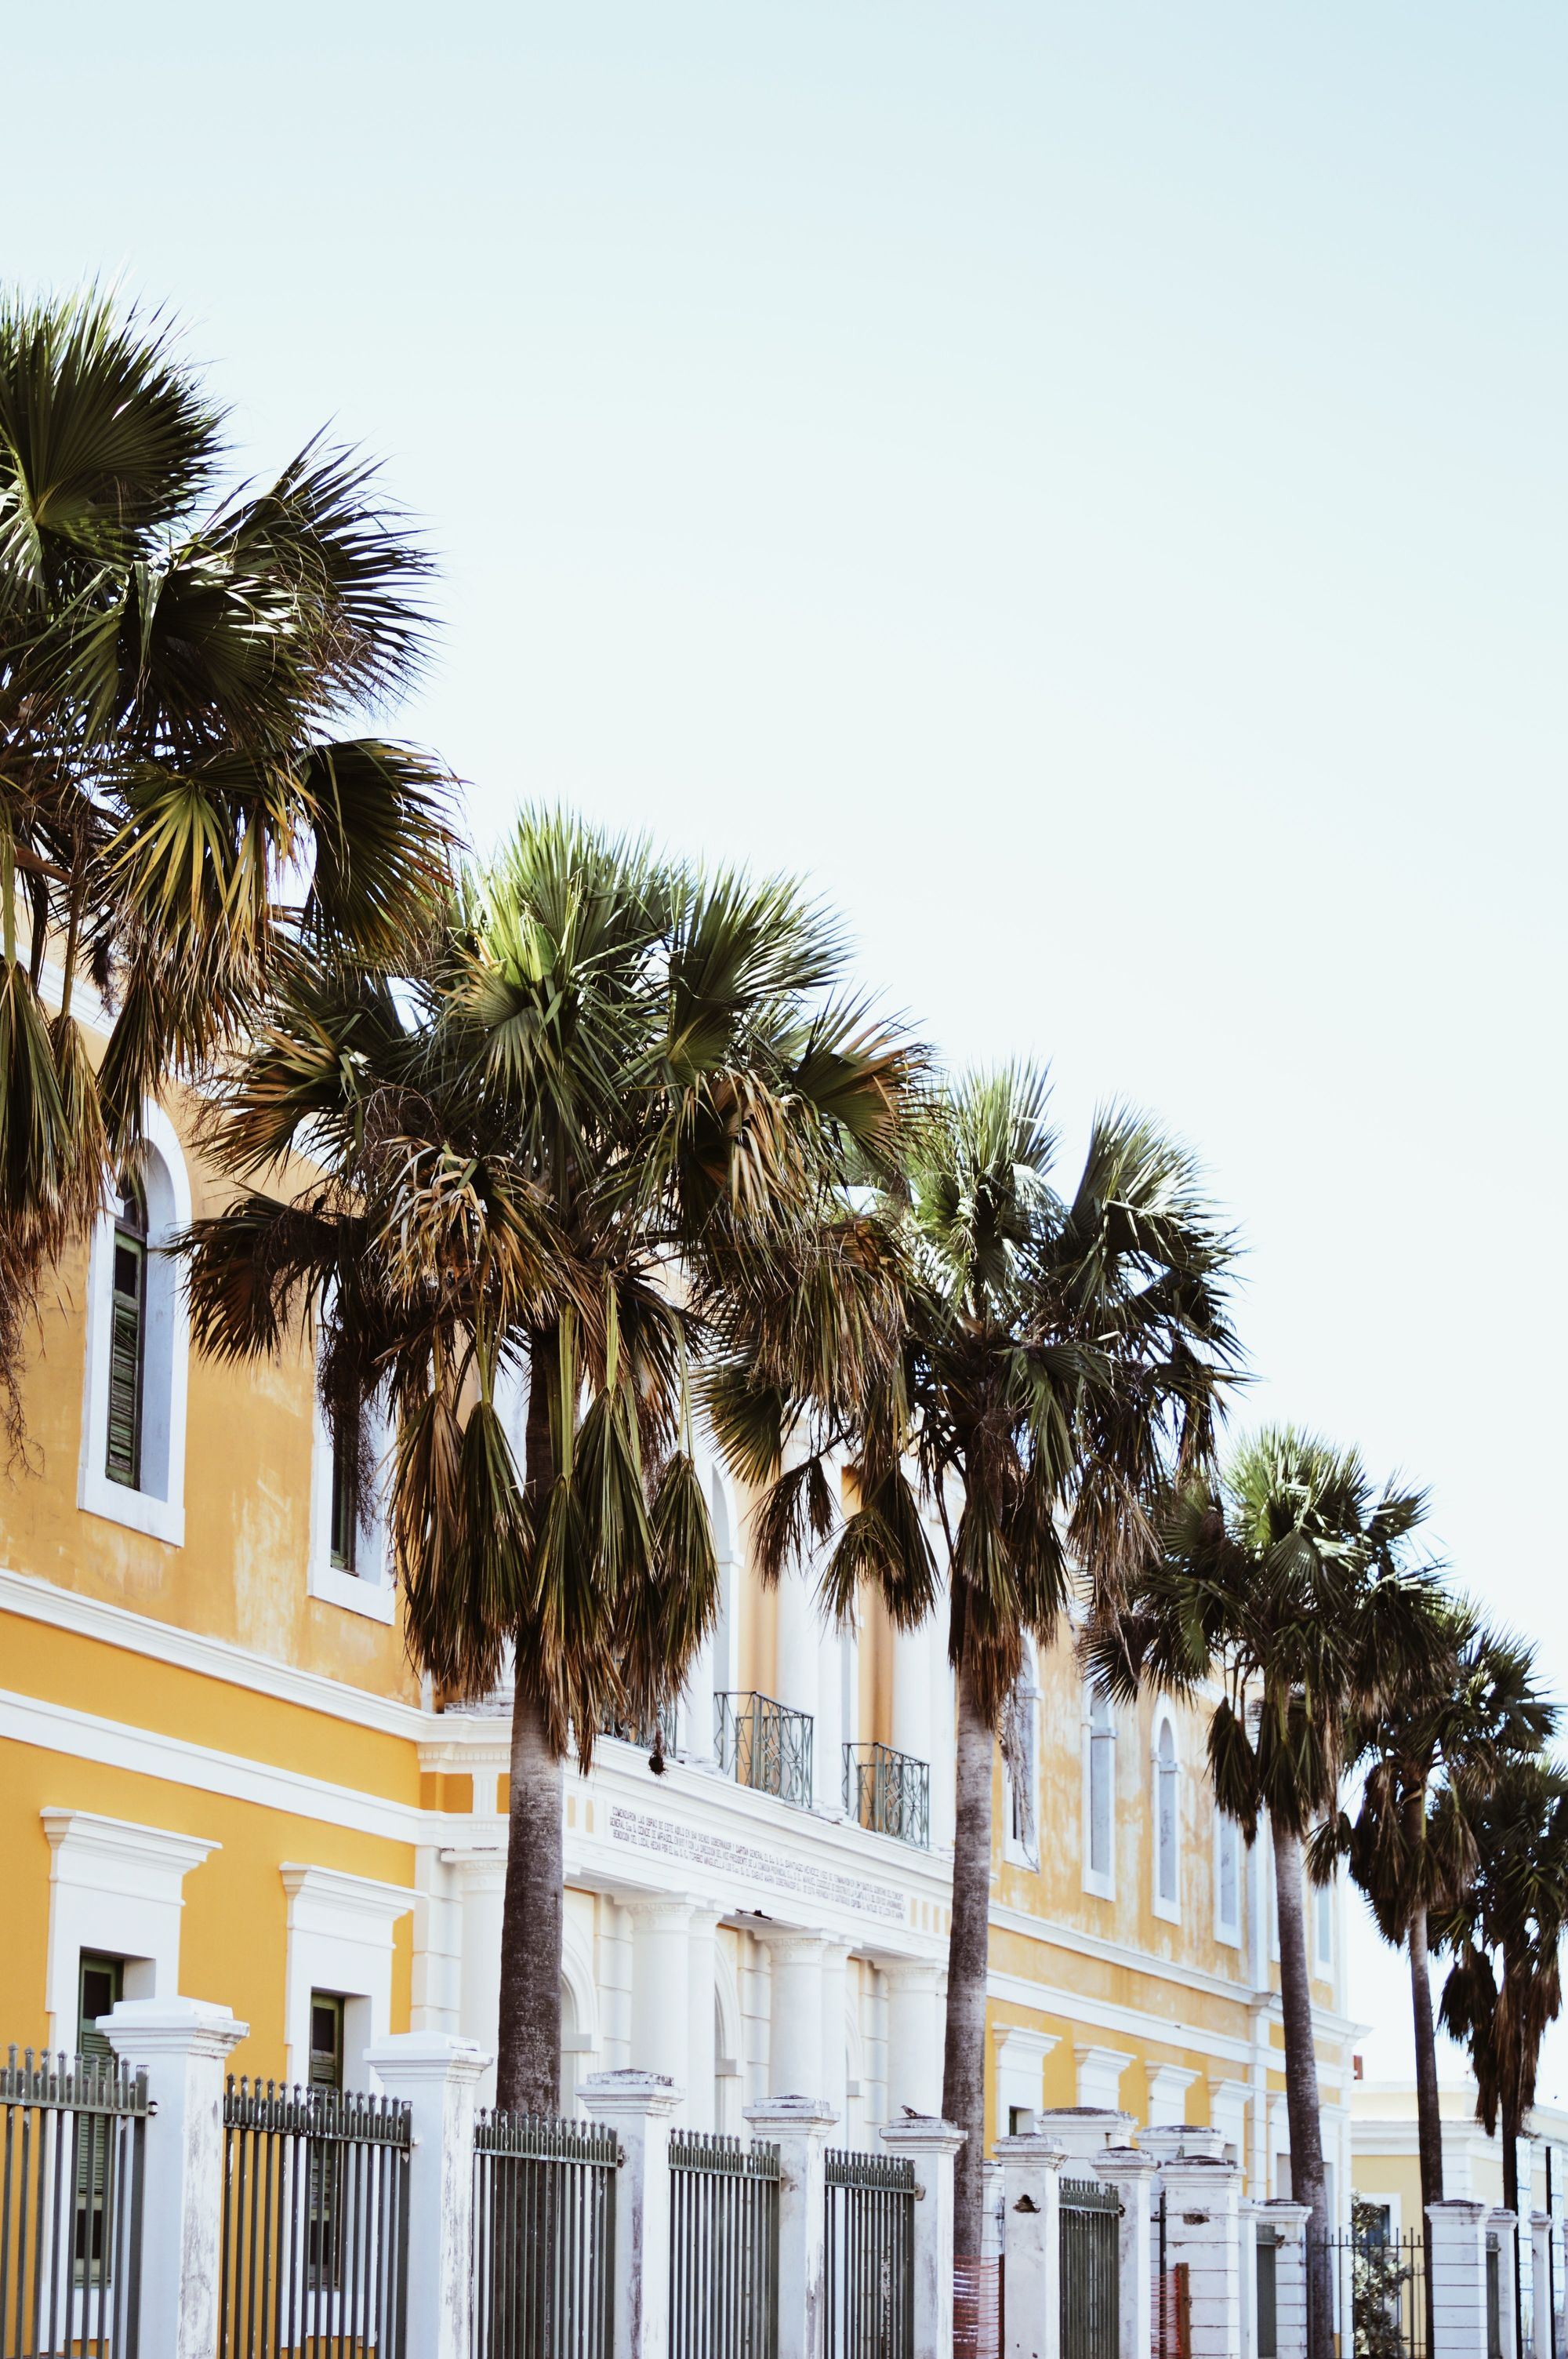 Photos of palm trees lined in front of older buildings in San Juan, Puerto Rico.